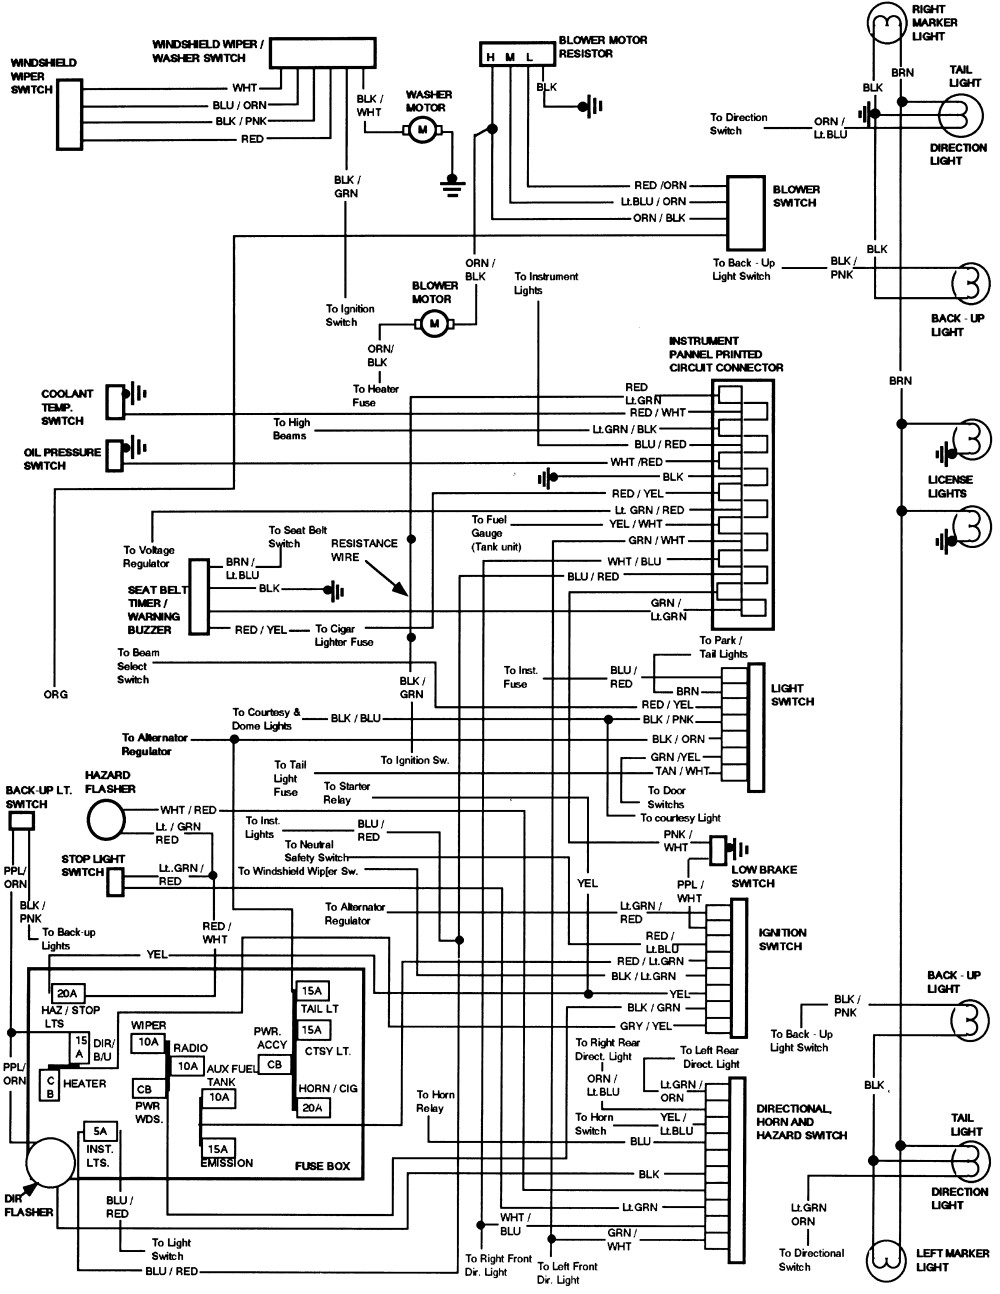 1968 Ford Truck Steering Column Wiring Diagram - Wiring ...  Ford Truck Steering Column Wiring Diagram on 1968 ford steering column sensor, 1968 steering box diagram, 1968 ford steering column repair, 1965 riviera steering column diagram, 1969 camaro power steering diagram, ford power steering diagram, 66 ford mustang steering diagram, 1968 mustang steering column diagram, 1968 ford radio schematic, 1967 mustang steering column diagram, 1968 chevelle steering column diagram, ford mustang wiring diagram, ford steering parts diagram, 68 chevelle steering column diagram, 1970 nova steering column diagram, 1973 f100 steering diagram, 67 c10 column diagram, 1965 econoline shift column diagram, 1967 mustang power steering diagram,